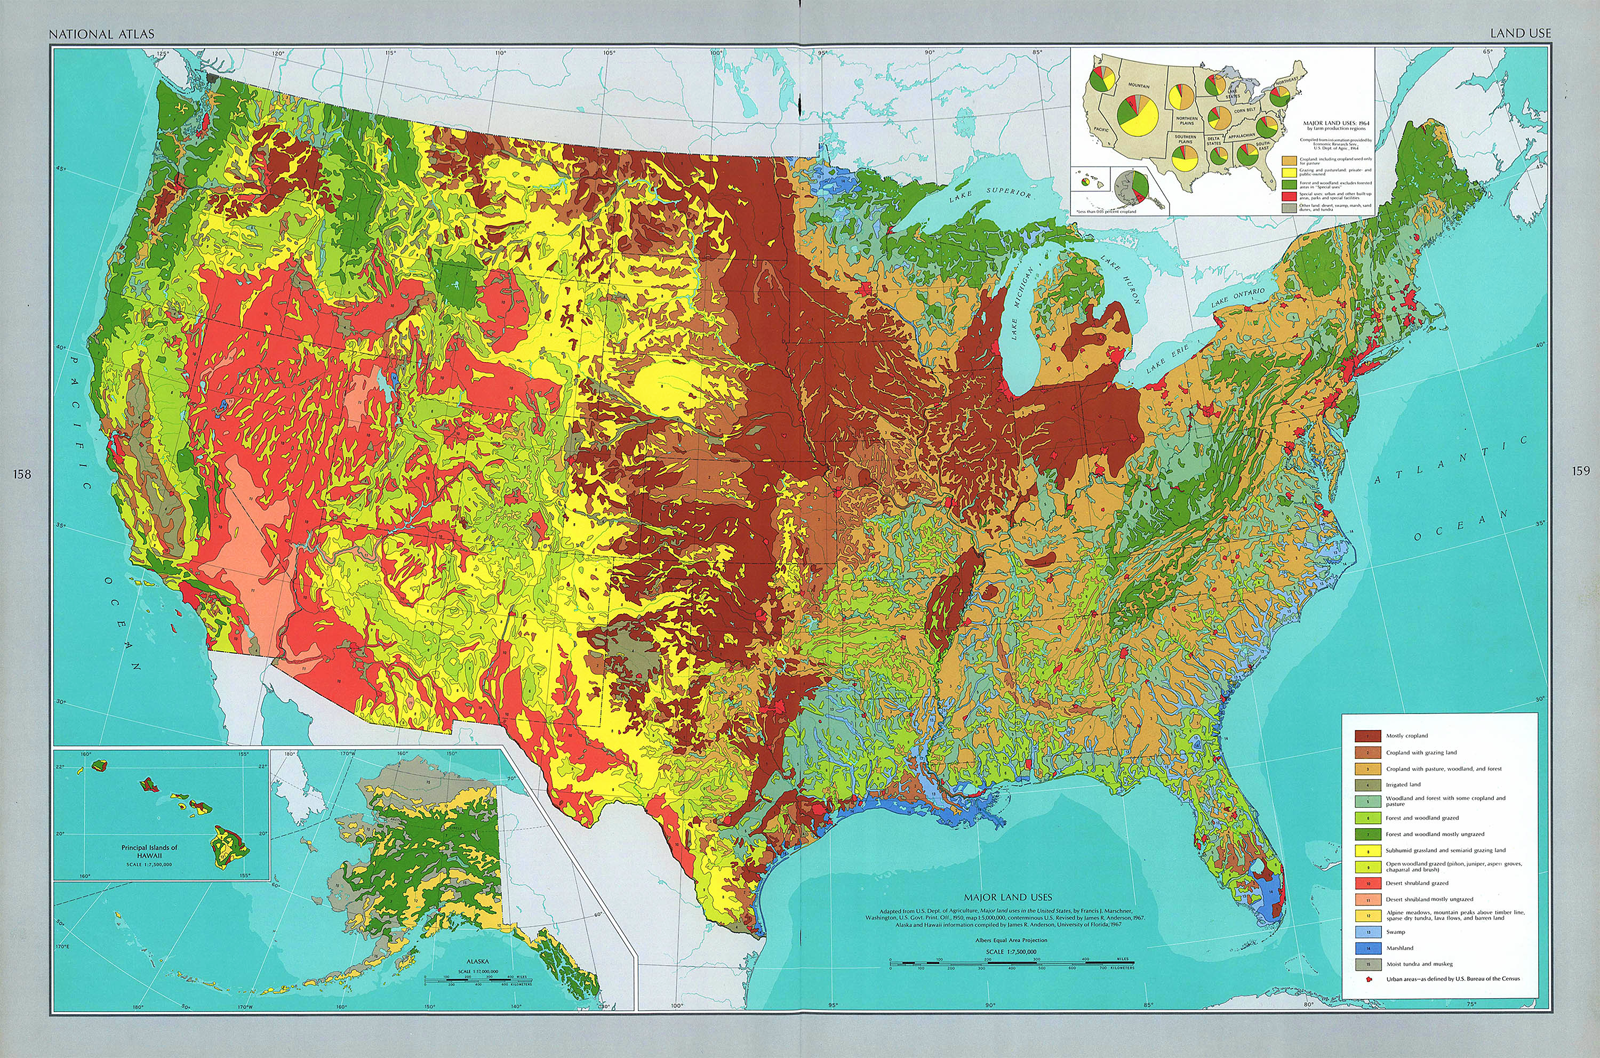 Run Usa Map.Usa Land Use Map 1970 Romney And Ryan Are Running On A Secret Plan